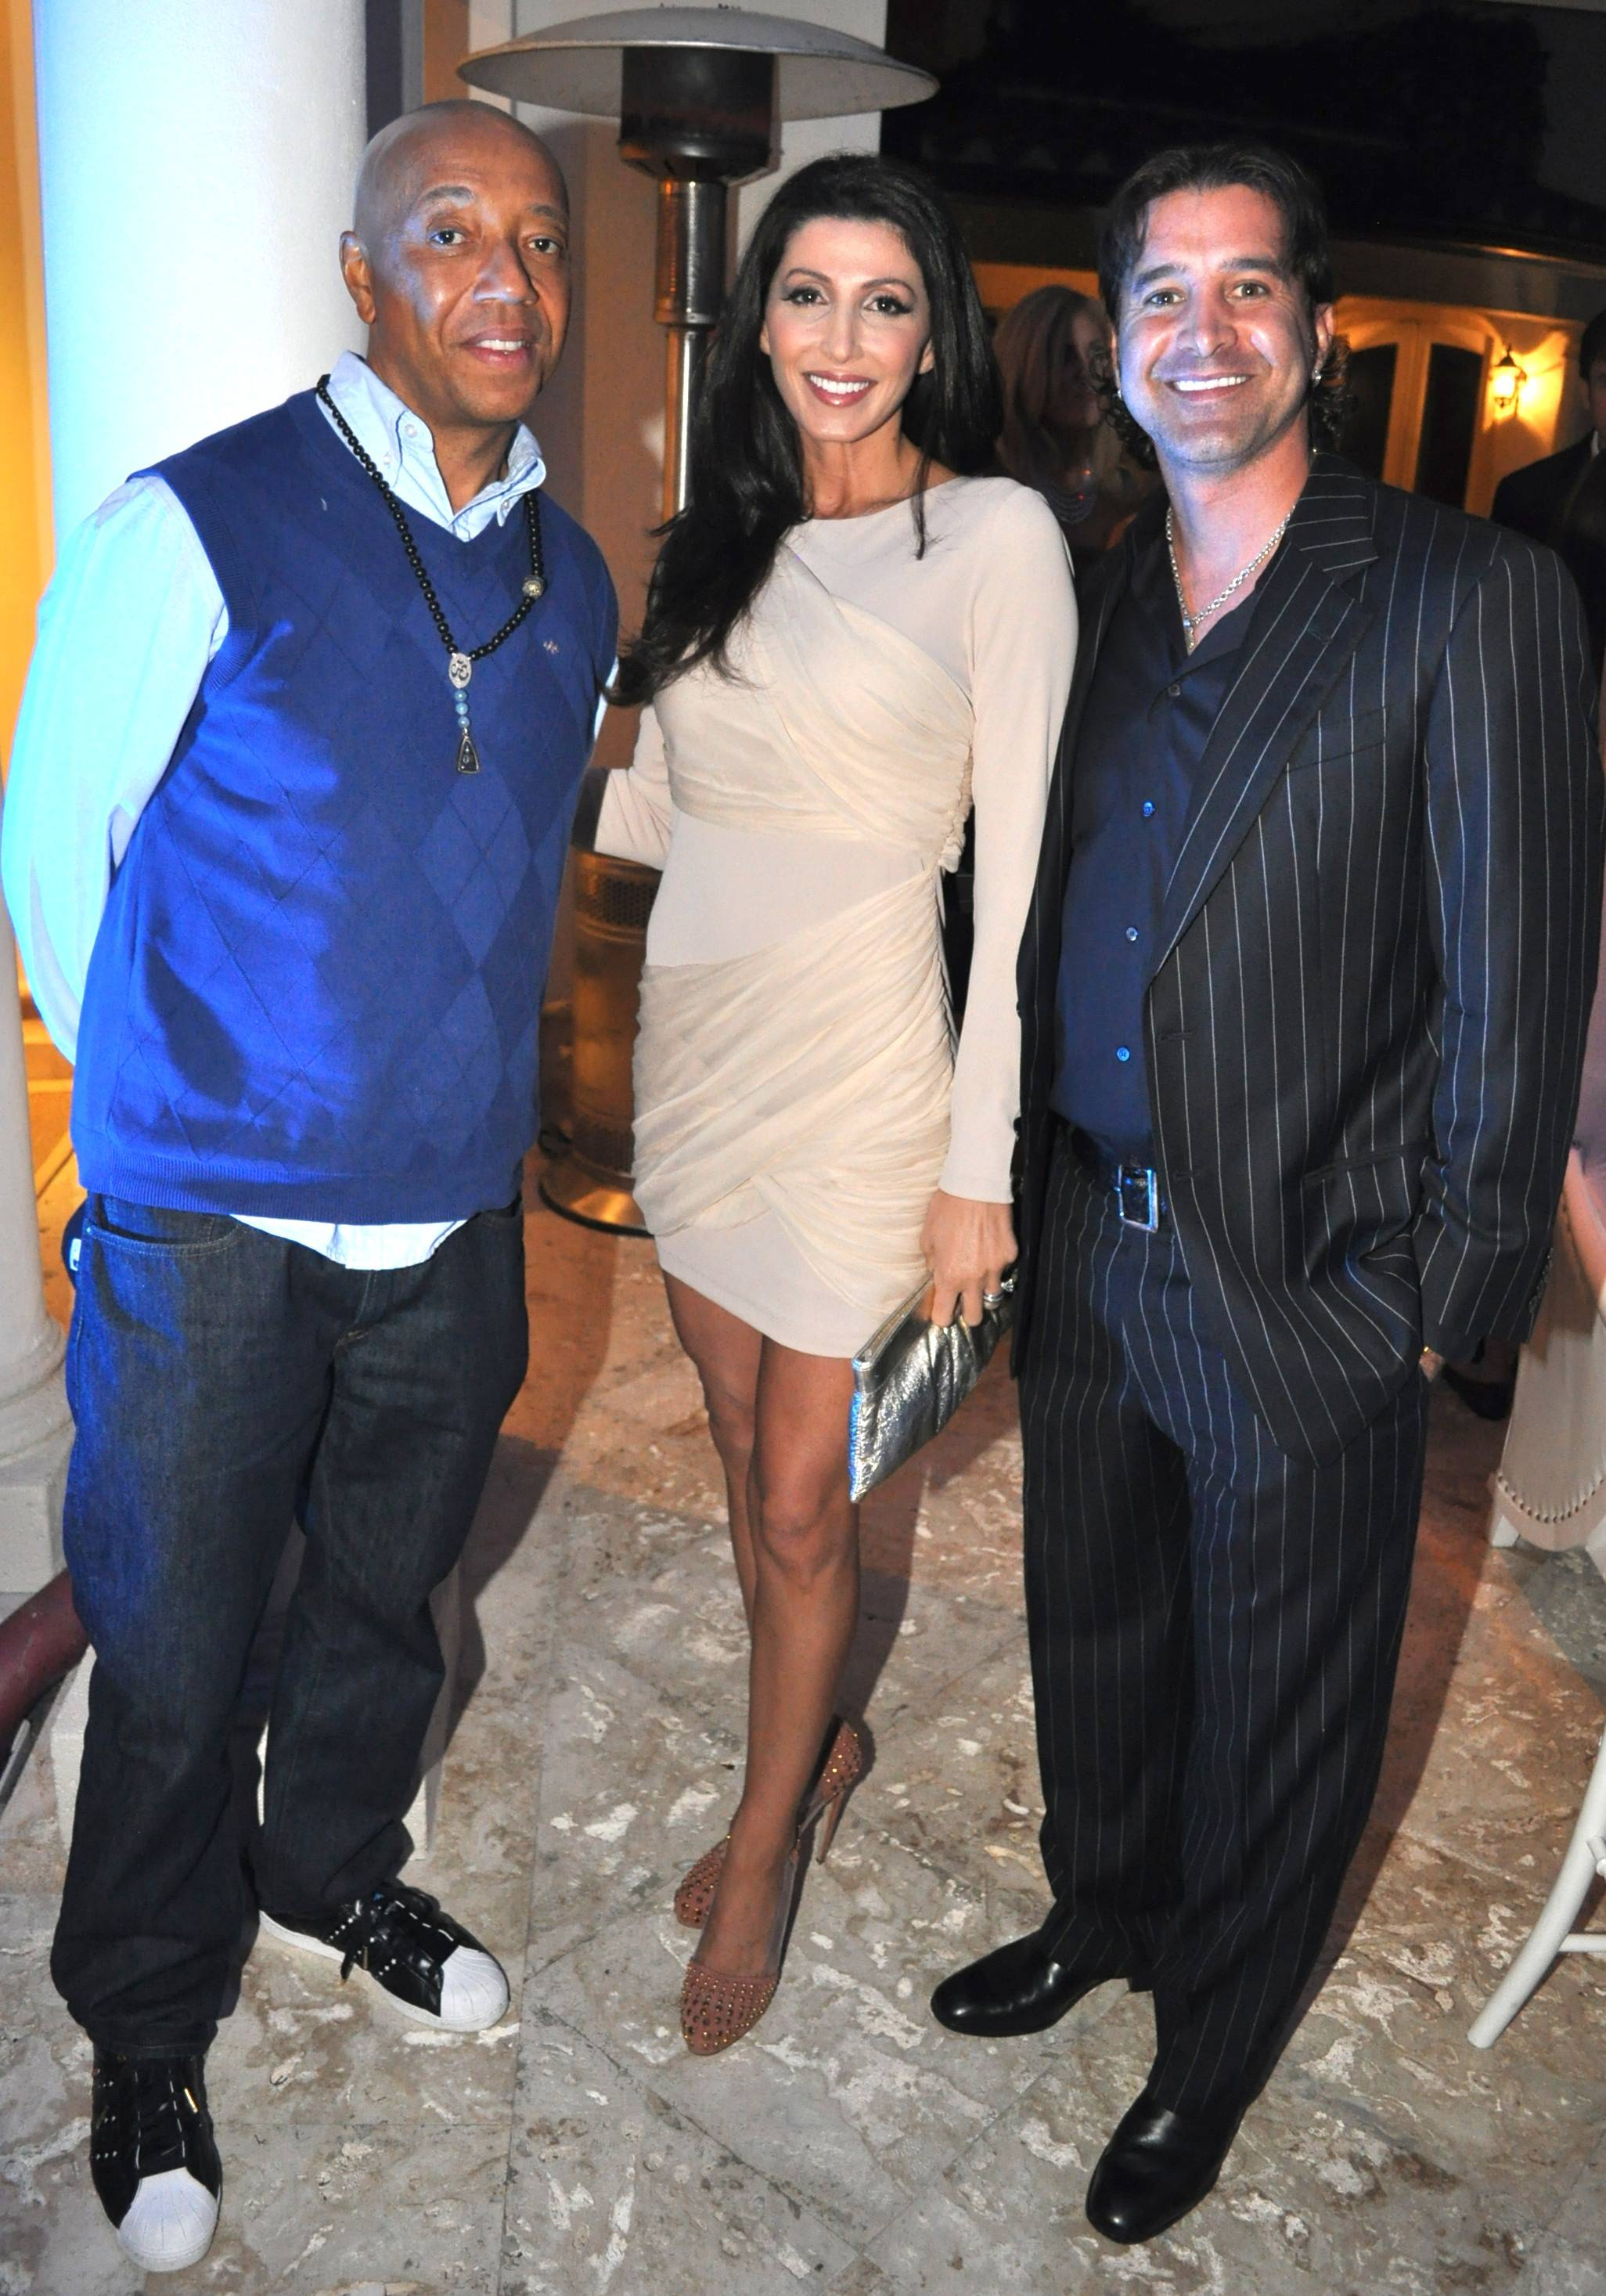 01 Russell Simmons, Jaclyn & Scott Stapp at Penn Medicine event